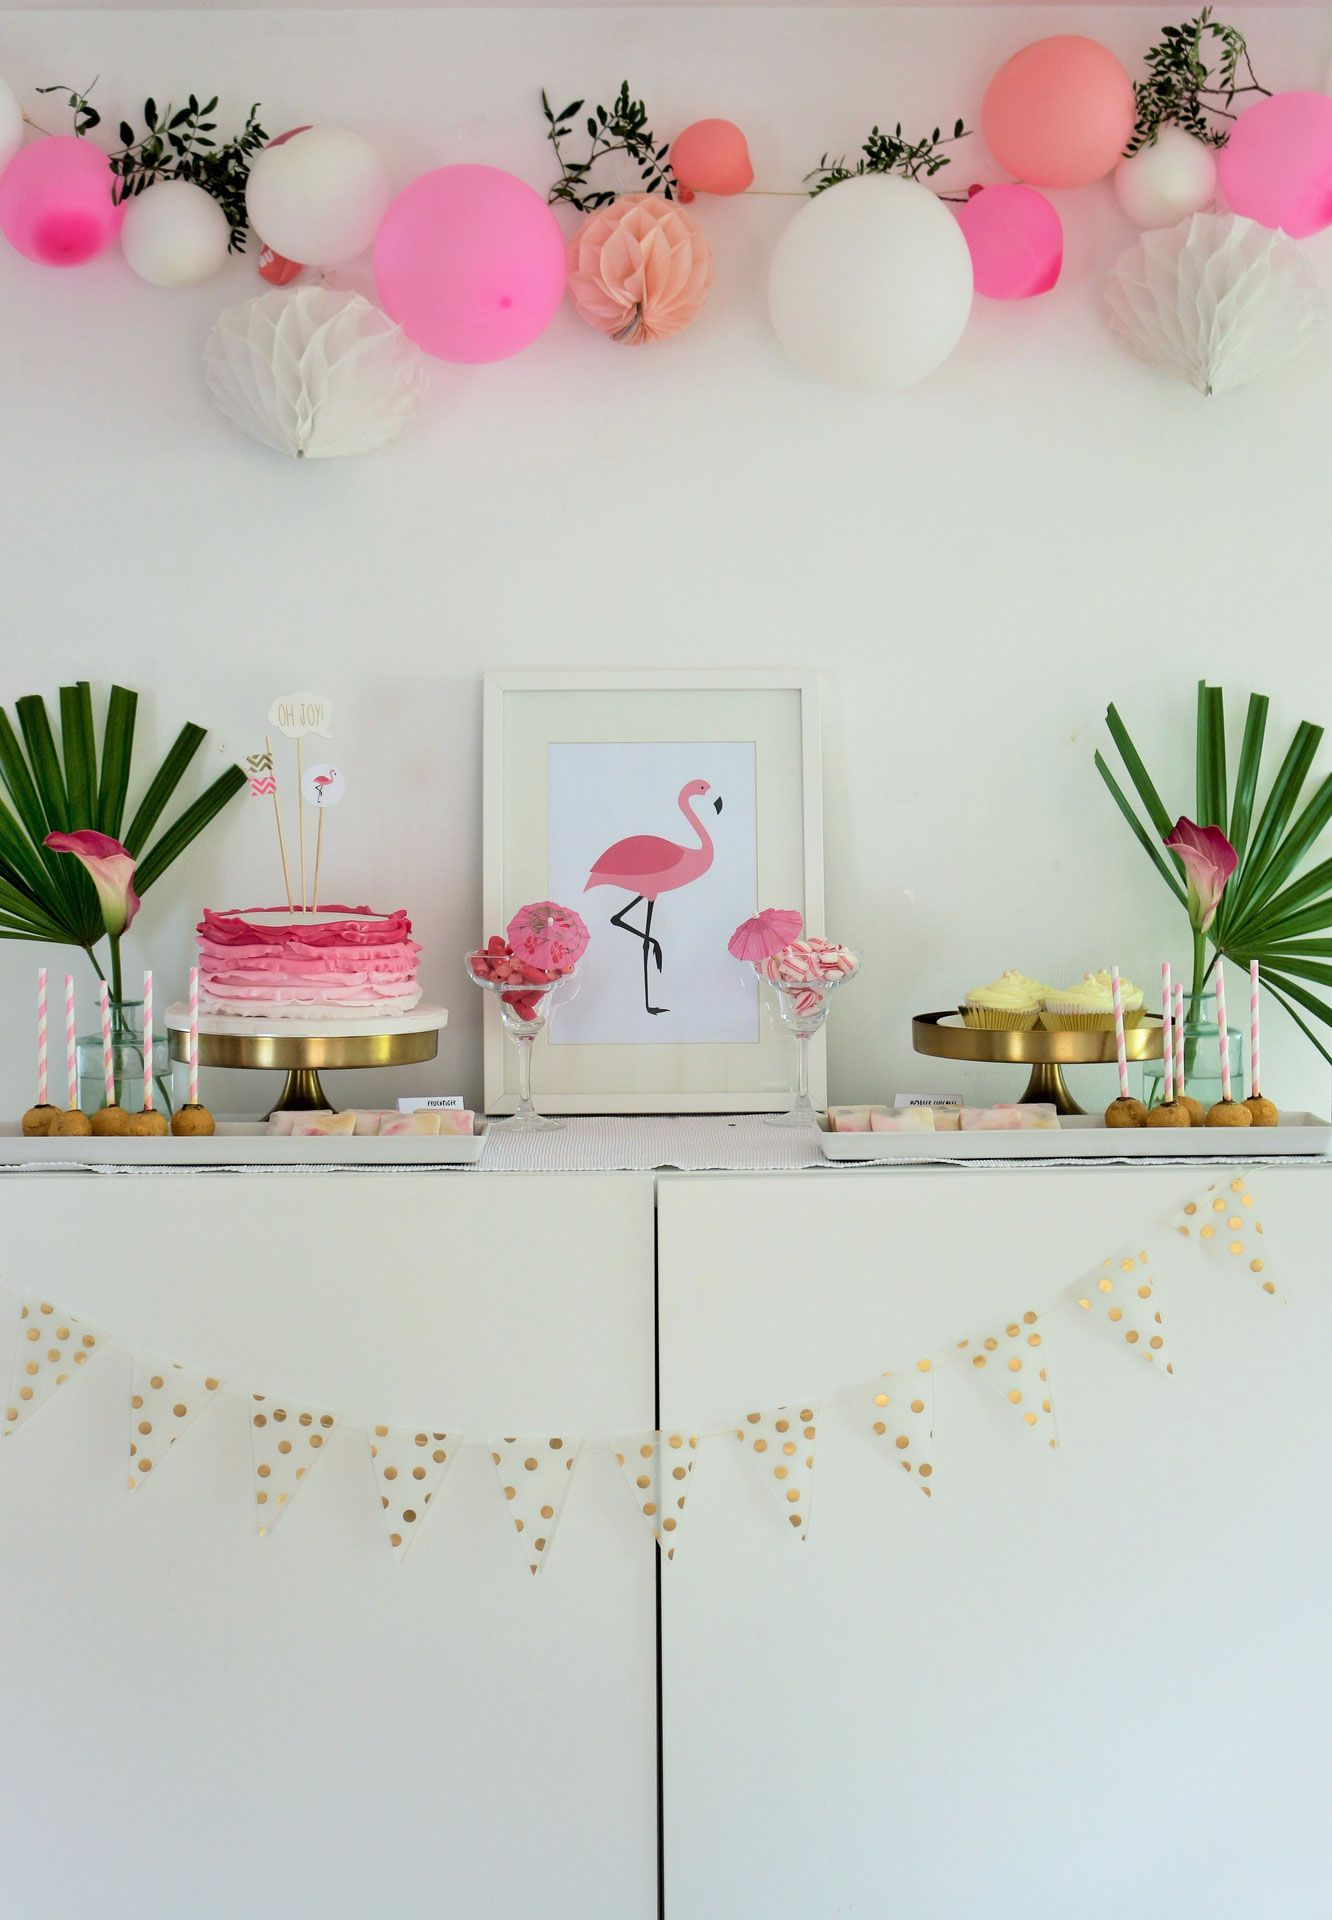 Diy Deko Ideen Geburtstag Flamingo Party Diy Deko Ideen Festivities Flamingo Party